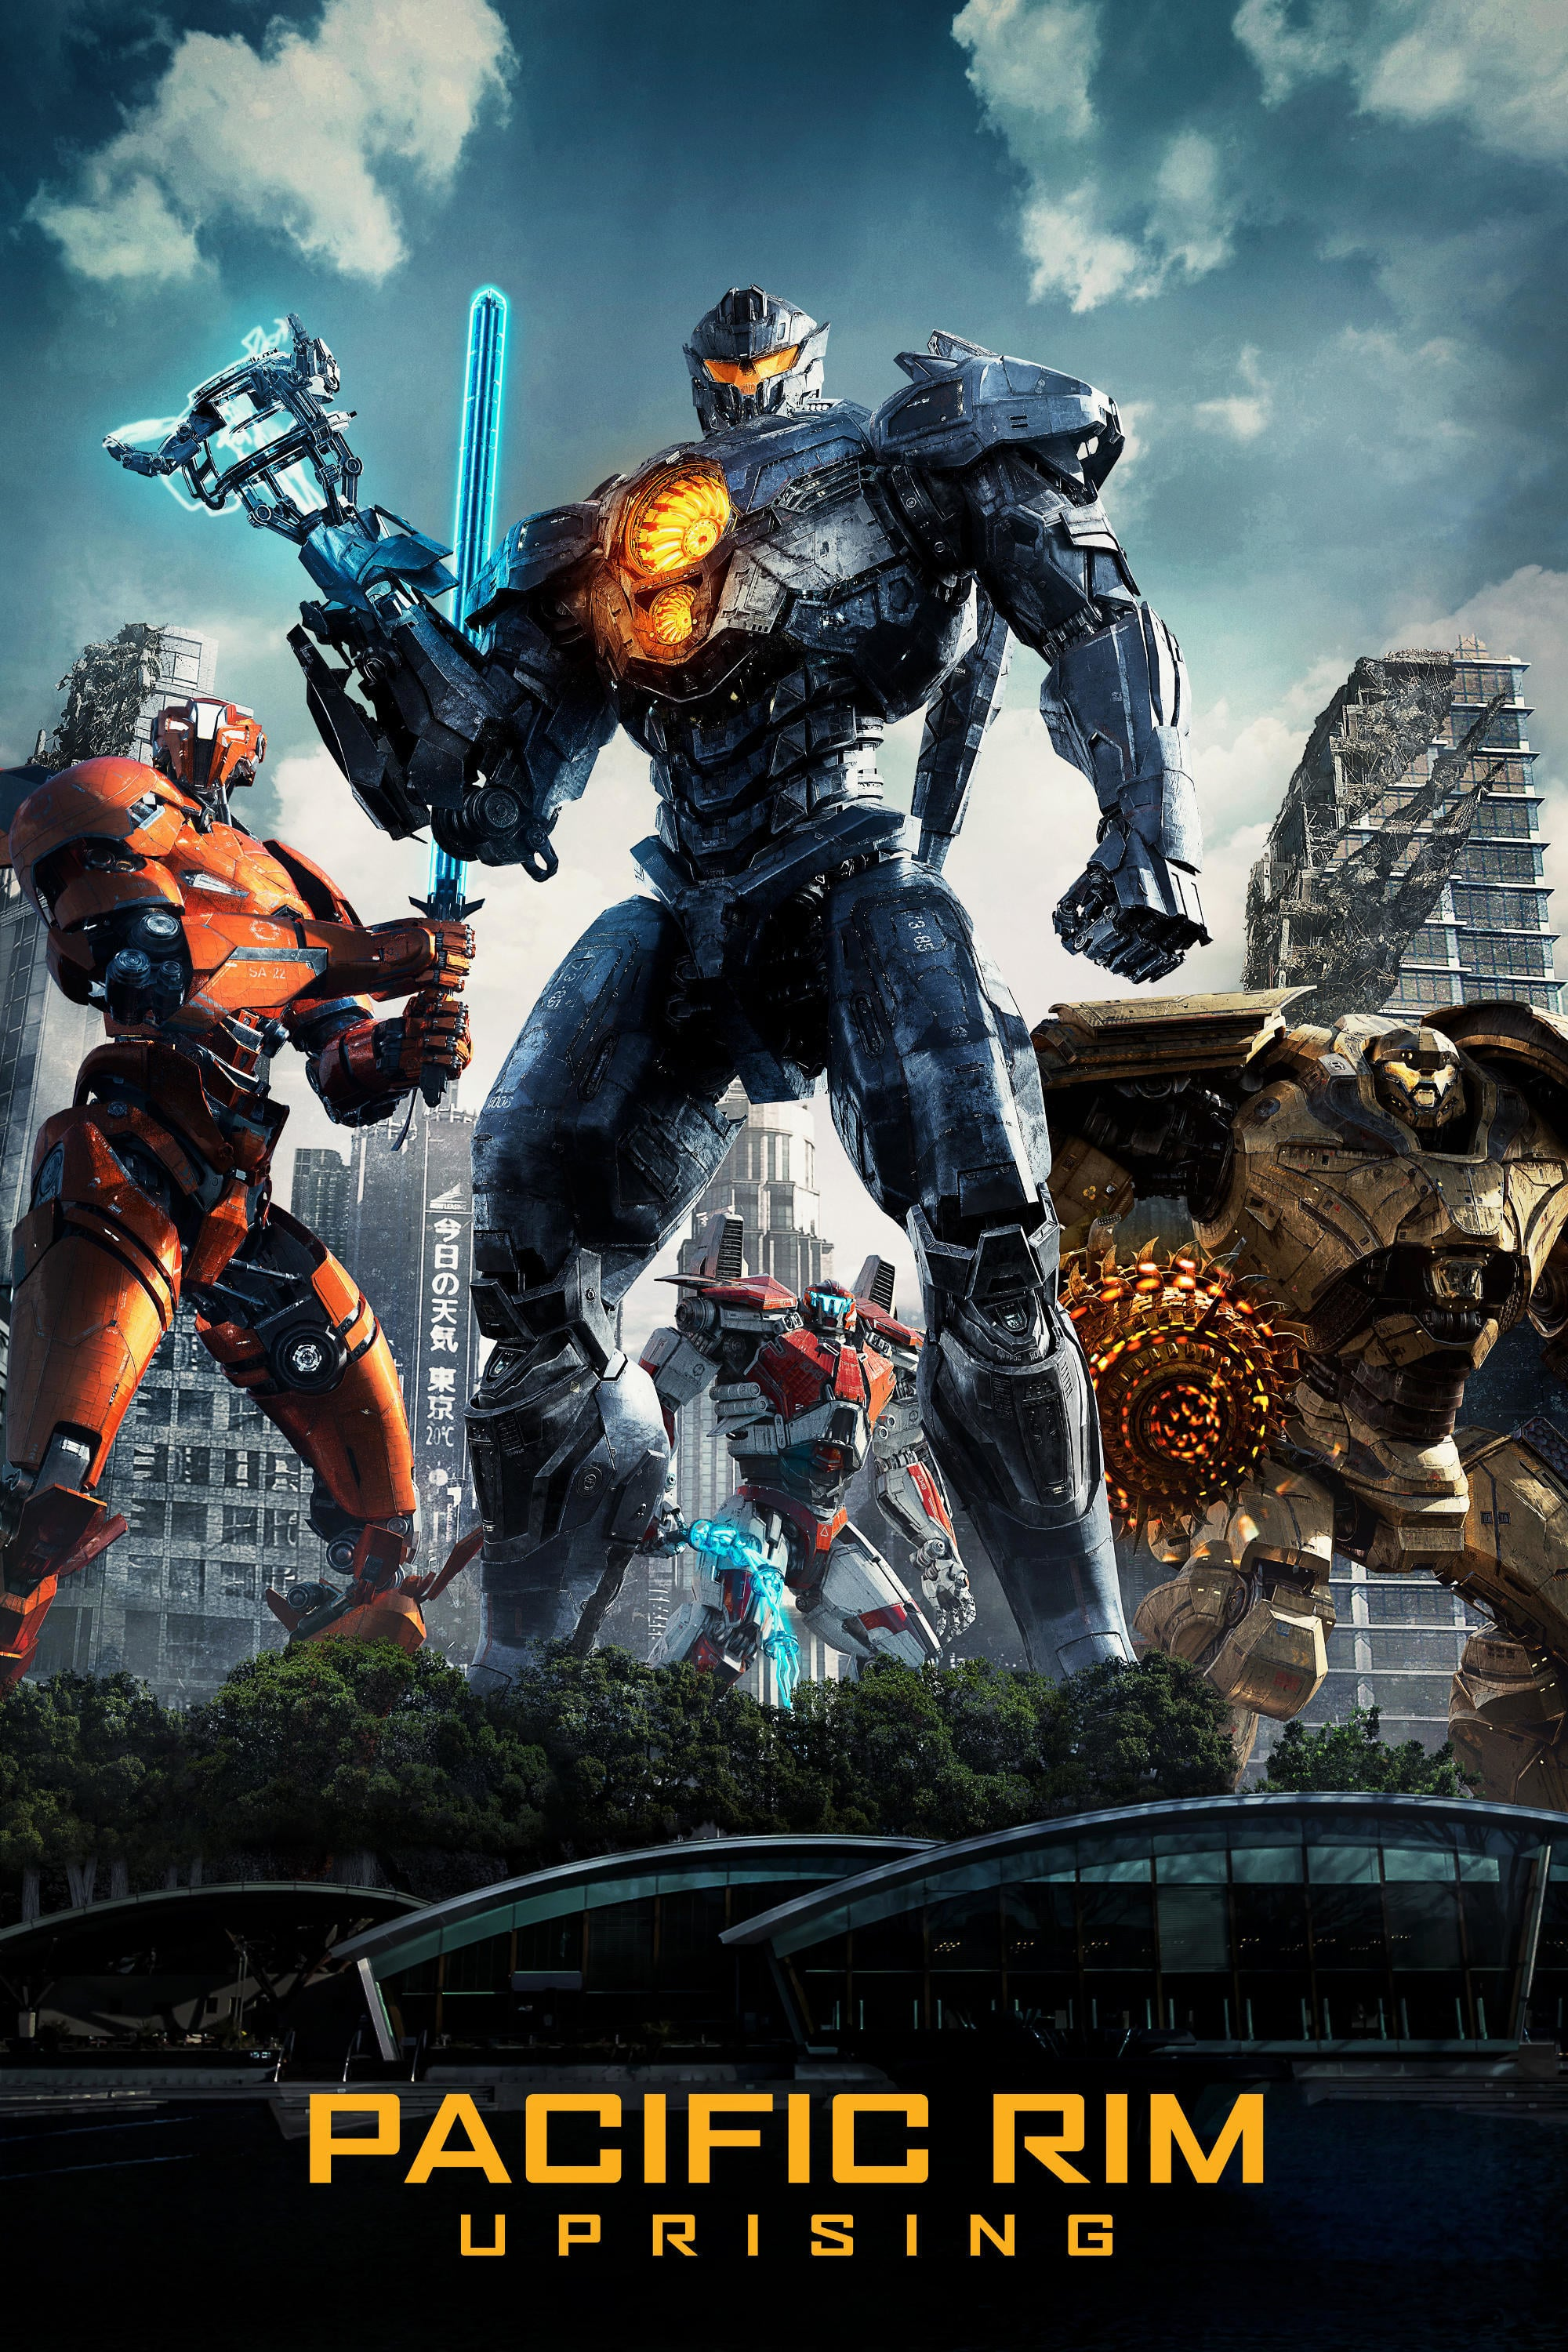 Pacific Rim: Uprising – Good special effects extravaganza.